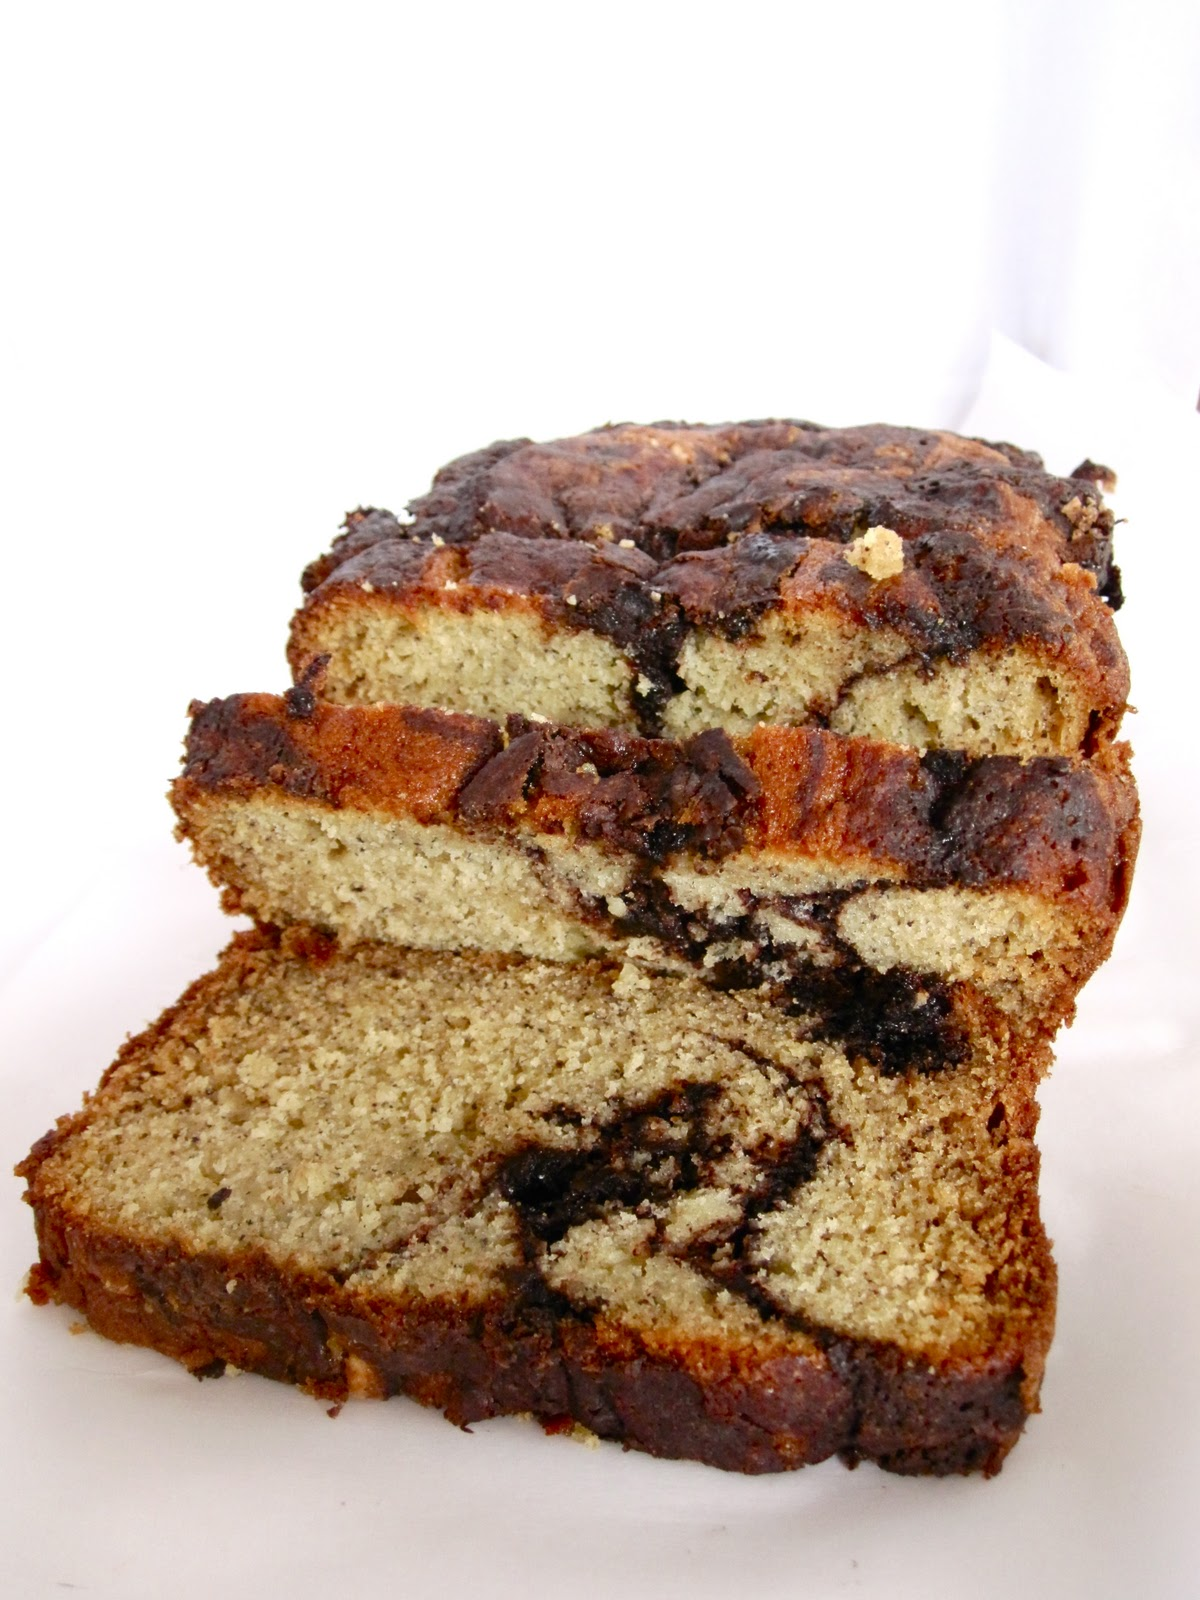 Chocolate Therapy: Chocolate Banana Marble Bread